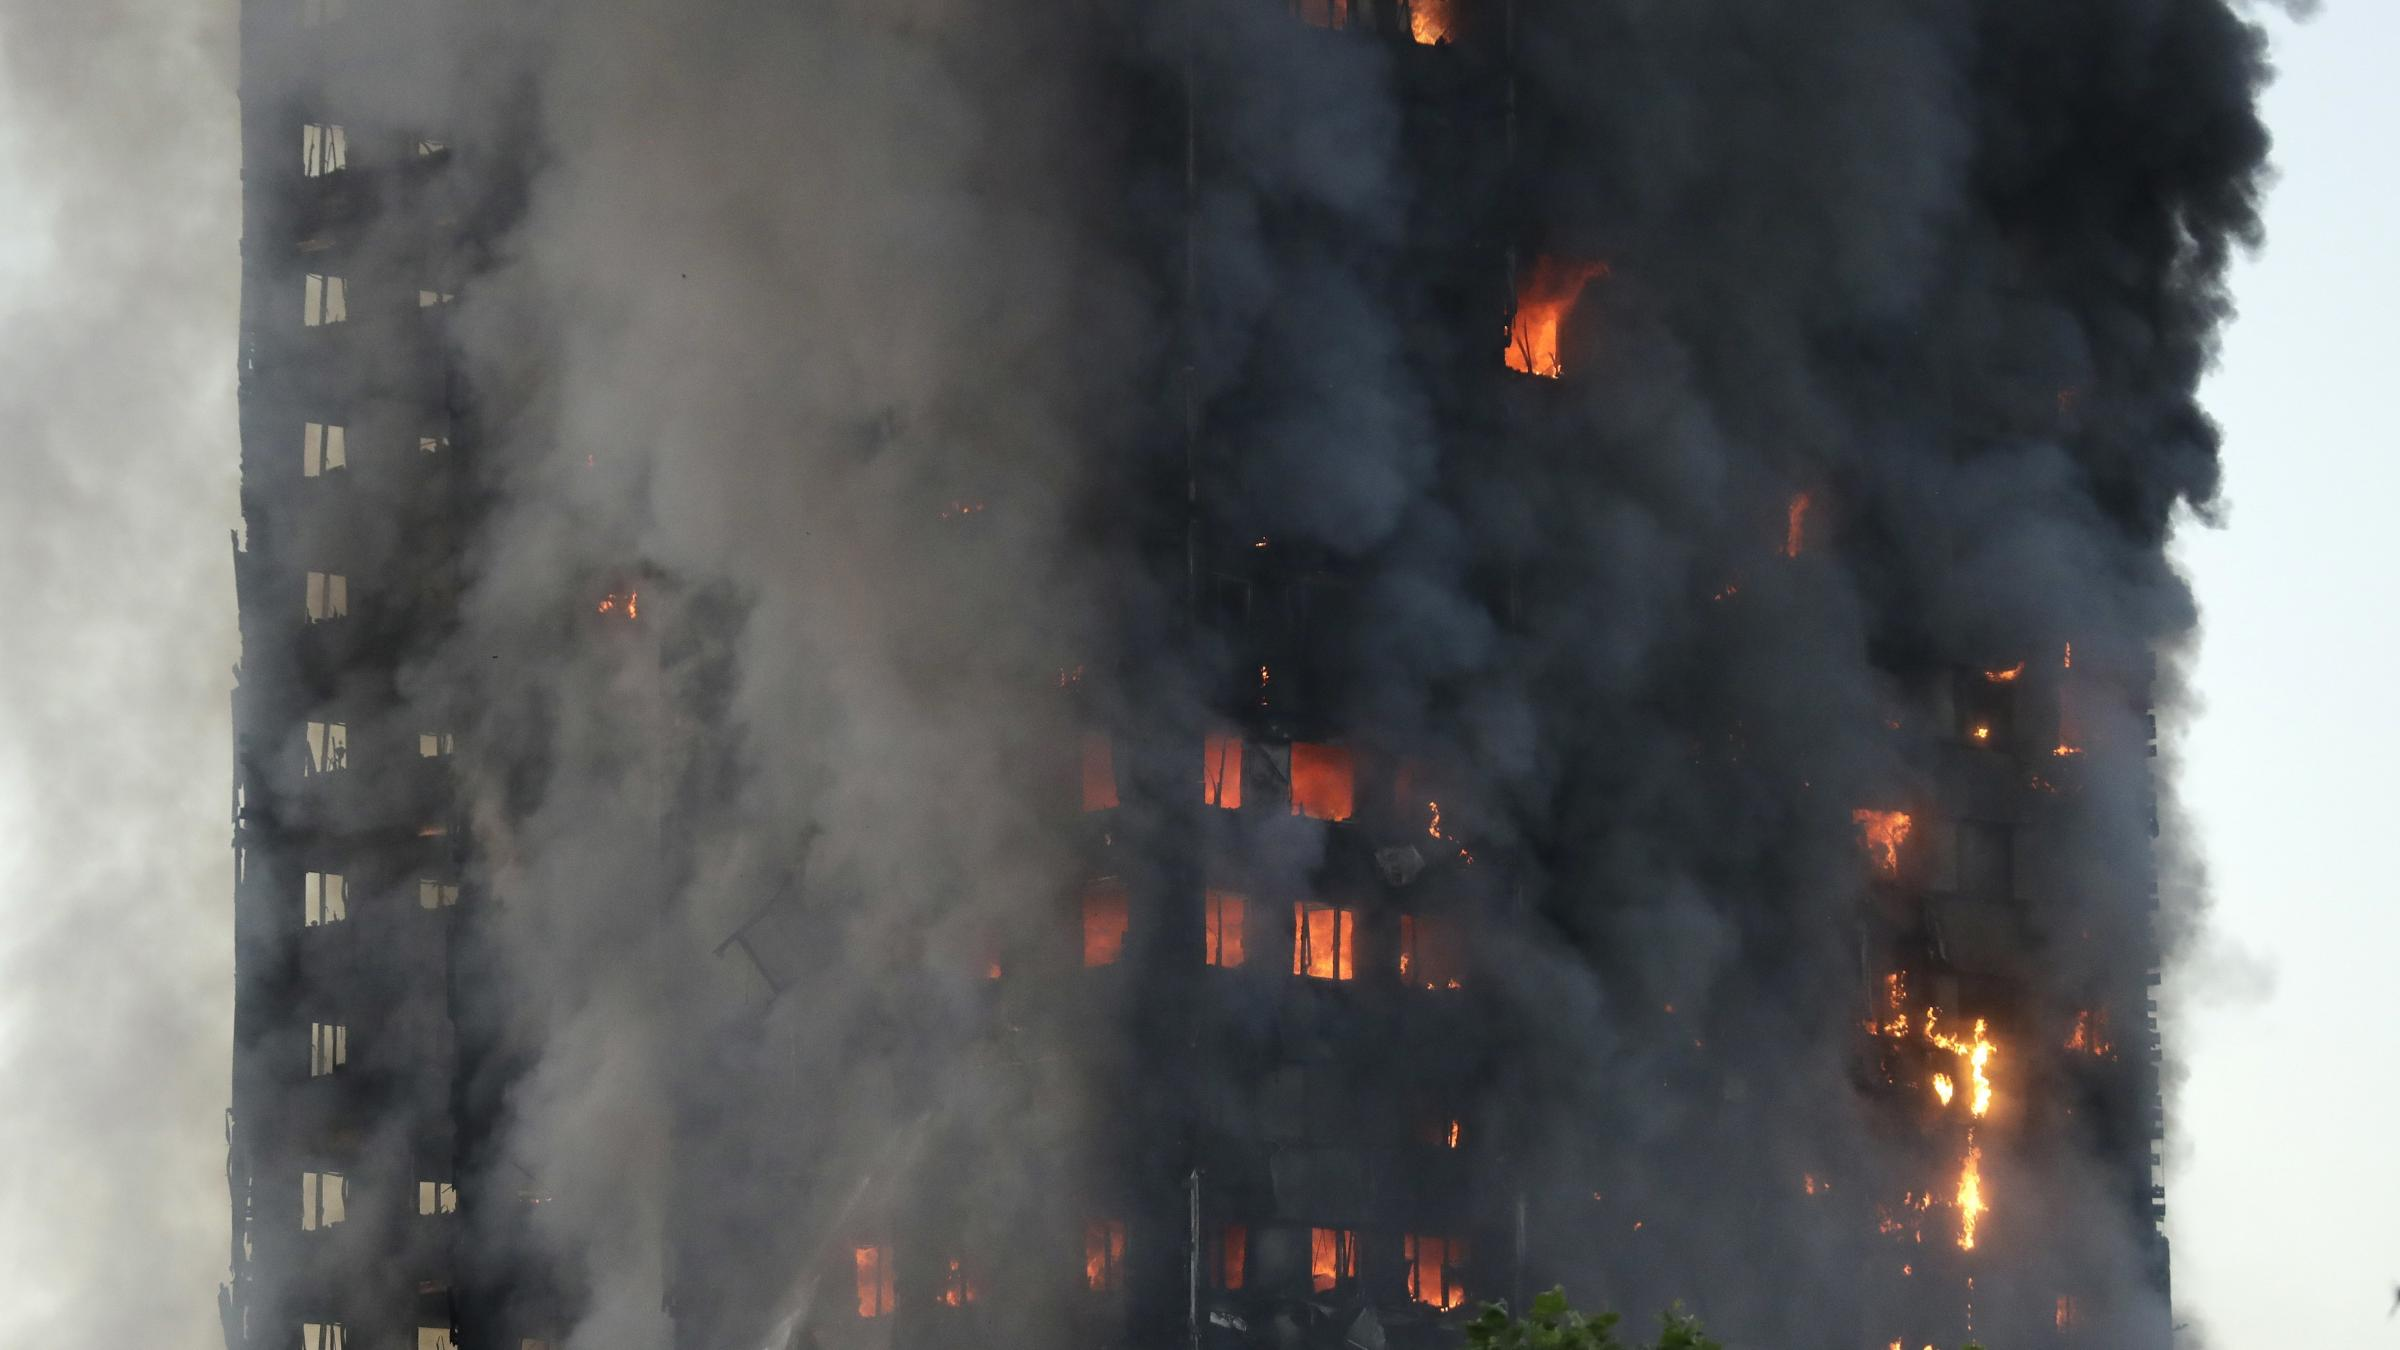 Firefighters battling massive blaze in London high-rise